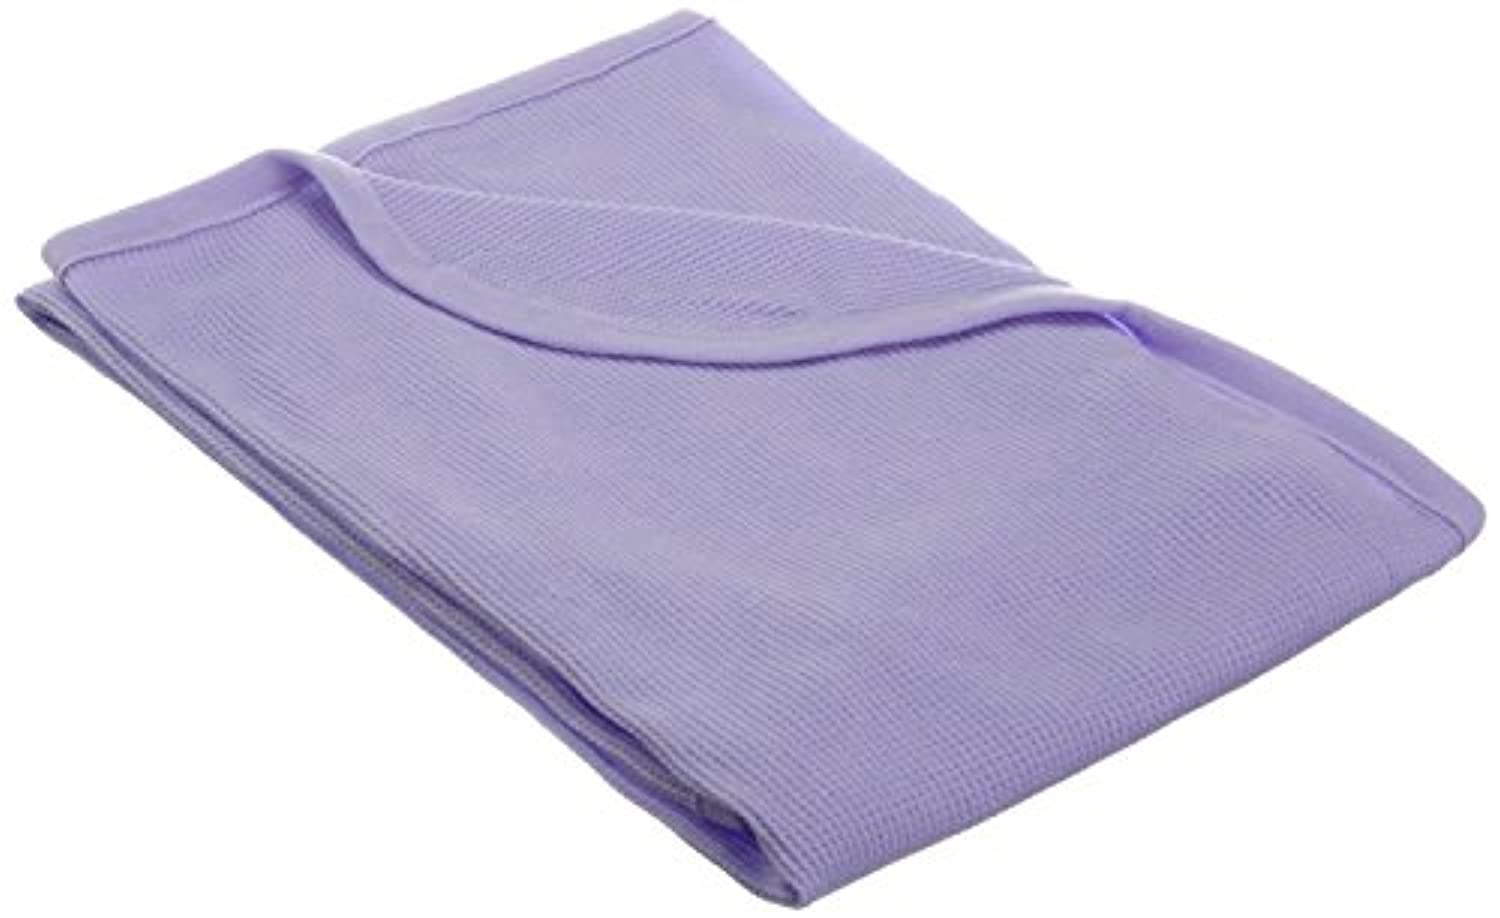 TL Care 100% Cotton Swaddle/Thermal Blanket, Lavender by TL Care